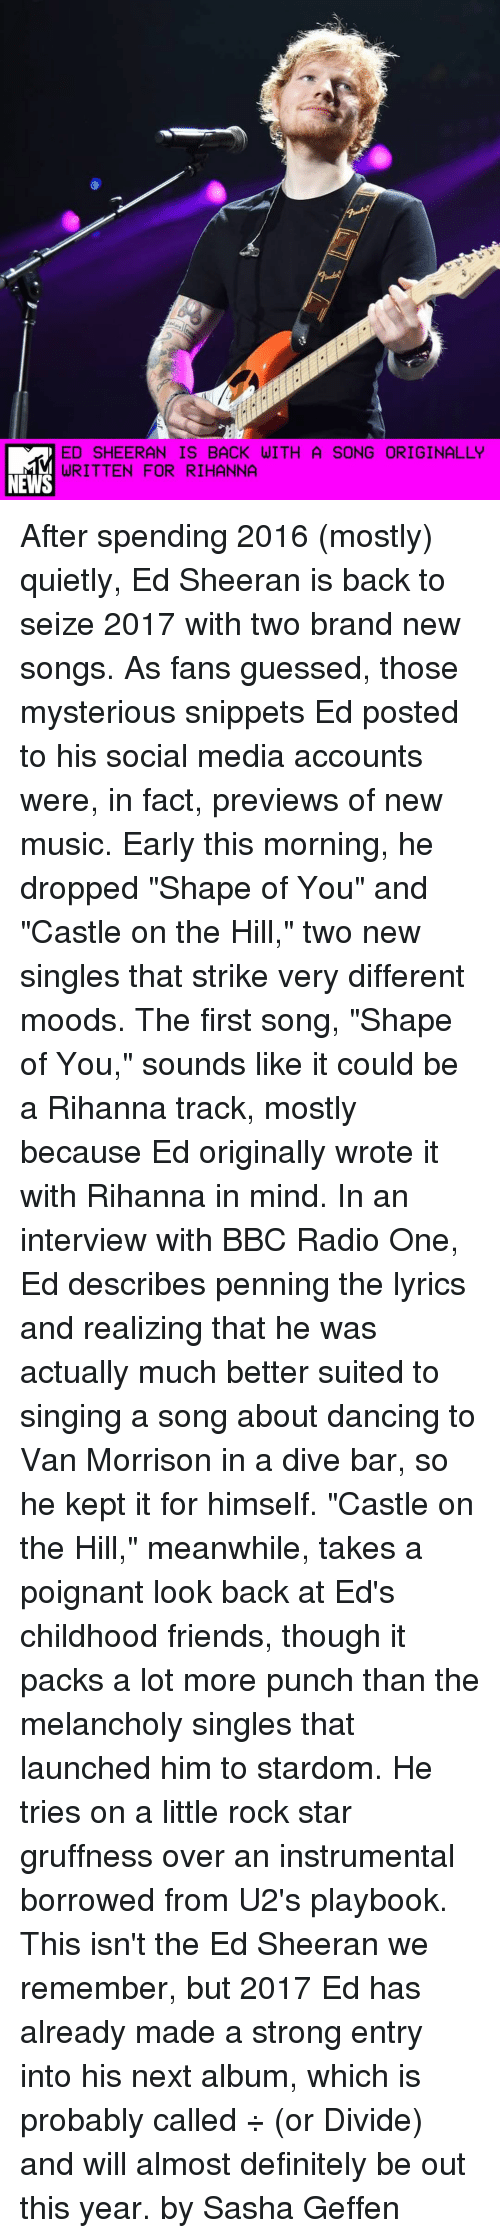 "Memes, Radio, and Rihanna: ED SHEERAN IS BACK WITH A SONG ORIGINALLY  WRITTEN FOR RIHANNA  NEWS After spending 2016 (mostly) quietly, Ed Sheeran is back to seize 2017 with two brand new songs. As fans guessed, those mysterious snippets Ed posted to his social media accounts were, in fact, previews of new music. Early this morning, he dropped ""Shape of You"" and ""Castle on the Hill,"" two new singles that strike very different moods. The first song, ""Shape of You,"" sounds like it could be a Rihanna track, mostly because Ed originally wrote it with Rihanna in mind. In an interview with BBC Radio One, Ed describes penning the lyrics and realizing that he was actually much better suited to singing a song about dancing to Van Morrison in a dive bar, so he kept it for himself. ""Castle on the Hill,"" meanwhile, takes a poignant look back at Ed's childhood friends, though it packs a lot more punch than the melancholy singles that launched him to stardom. He tries on a little rock star gruffness over an instrumental borrowed from U2's playbook. This isn't the Ed Sheeran we remember, but 2017 Ed has already made a strong entry into his next album, which is probably called ÷ (or Divide) and will almost definitely be out this year. by Sasha Geffen"